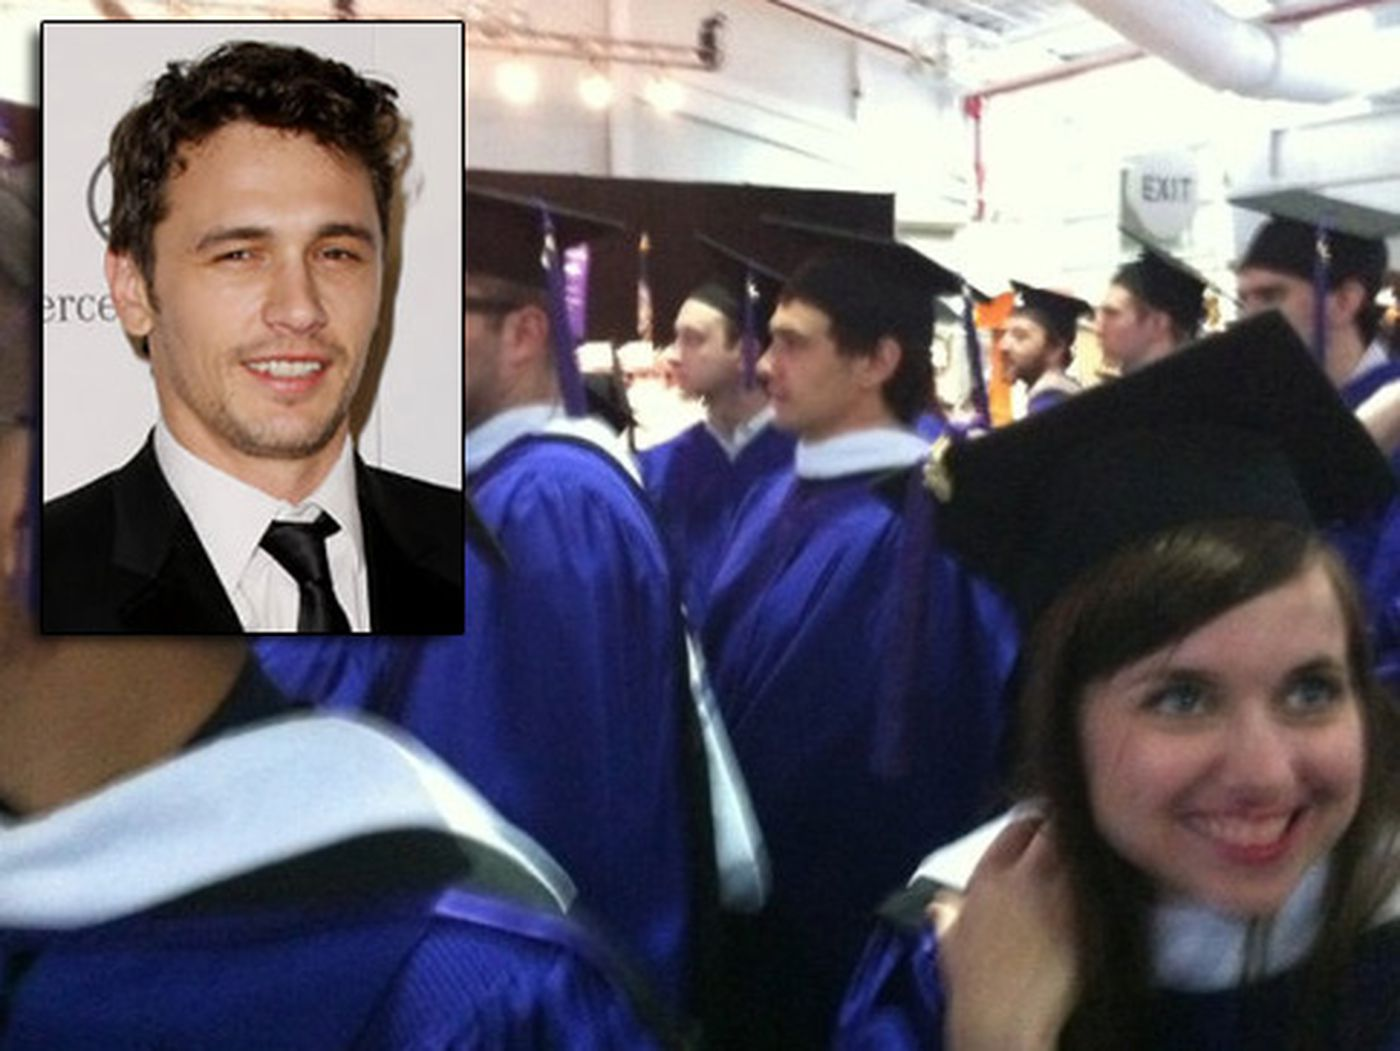 Nyu Tisch School Of The Arts Location James Franco Graduates From Nyu 39s Tisch School Of The Arts